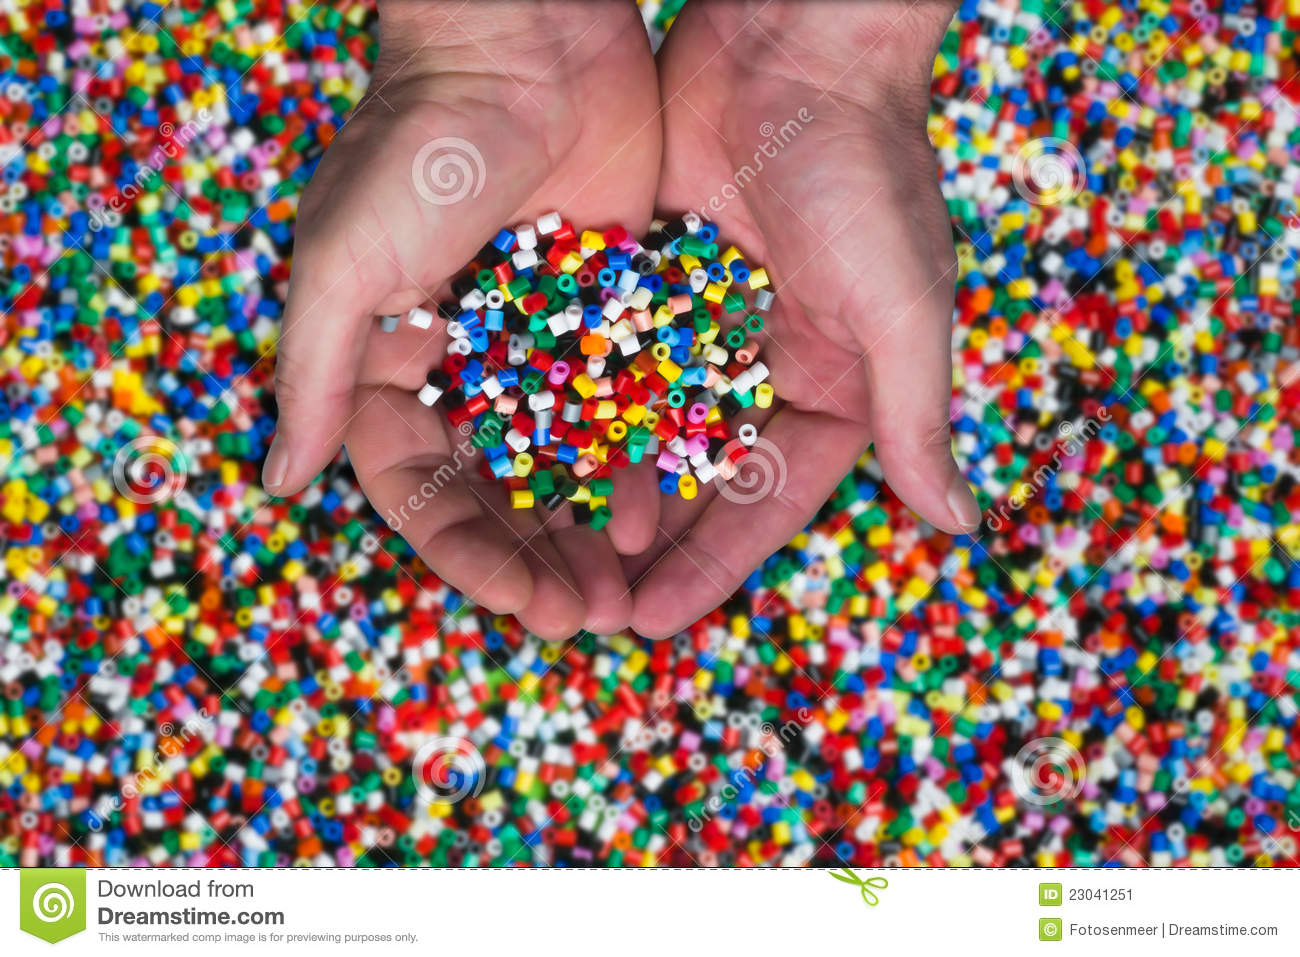 Plastic granules or plastic beads for children to play with.